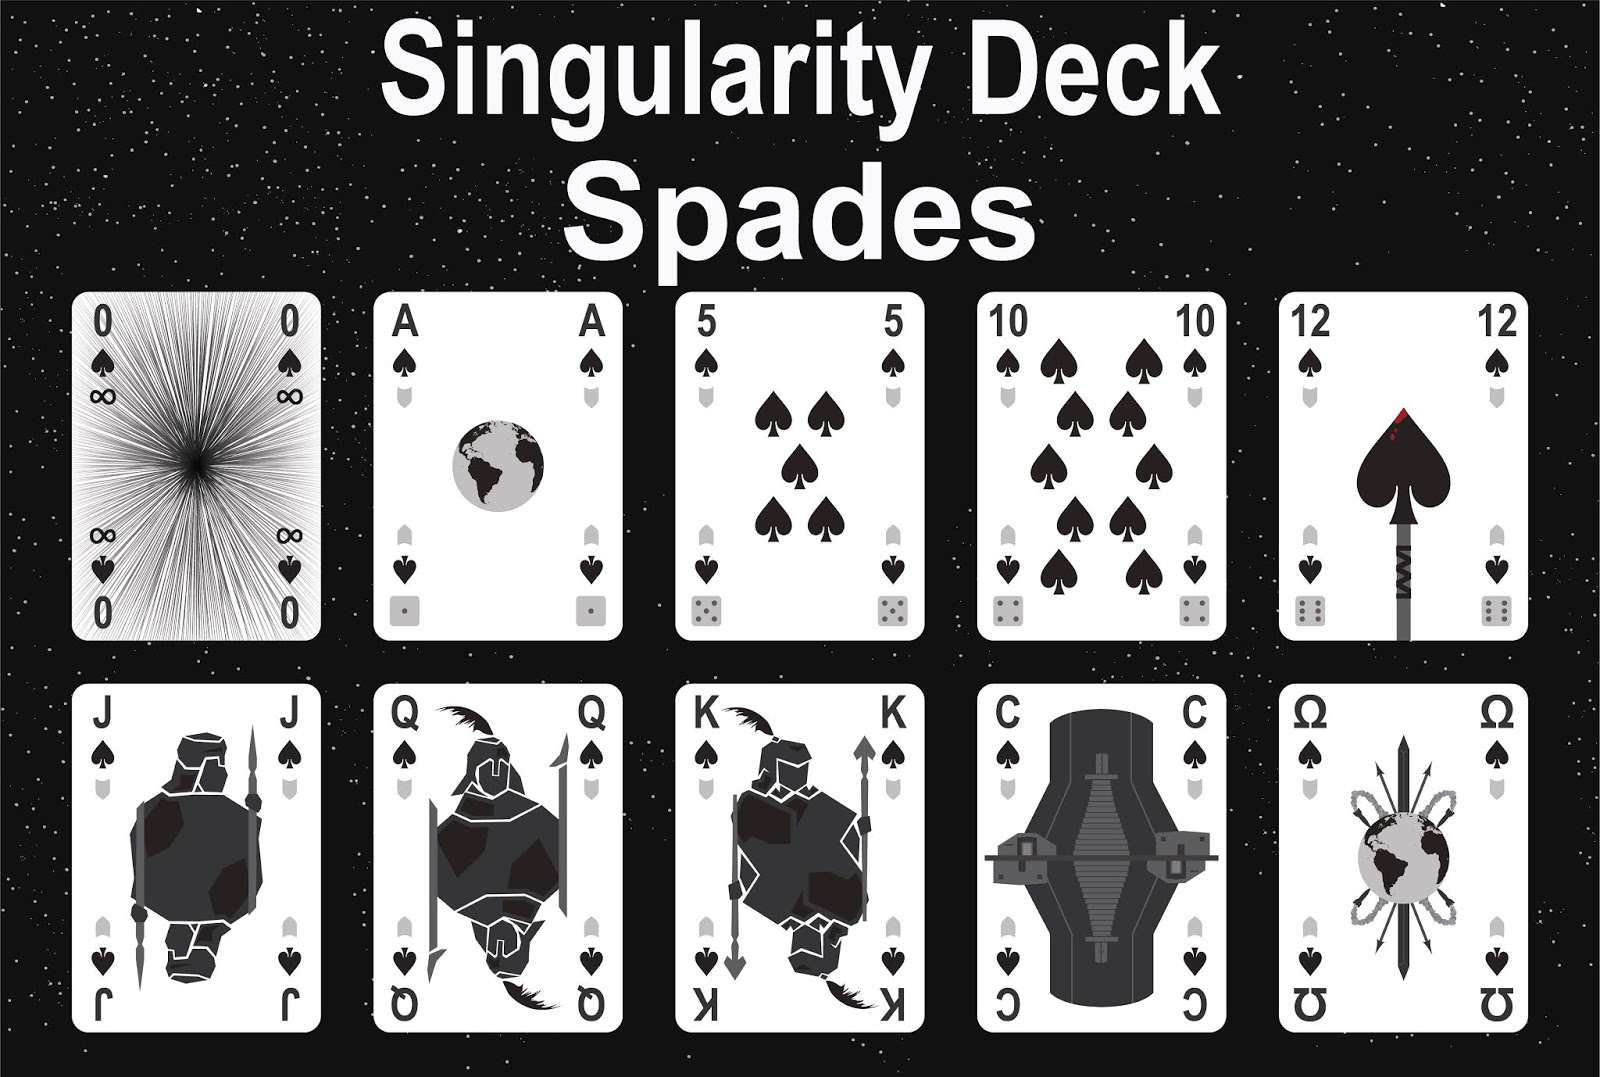 The Singularity Deck - Spades Art